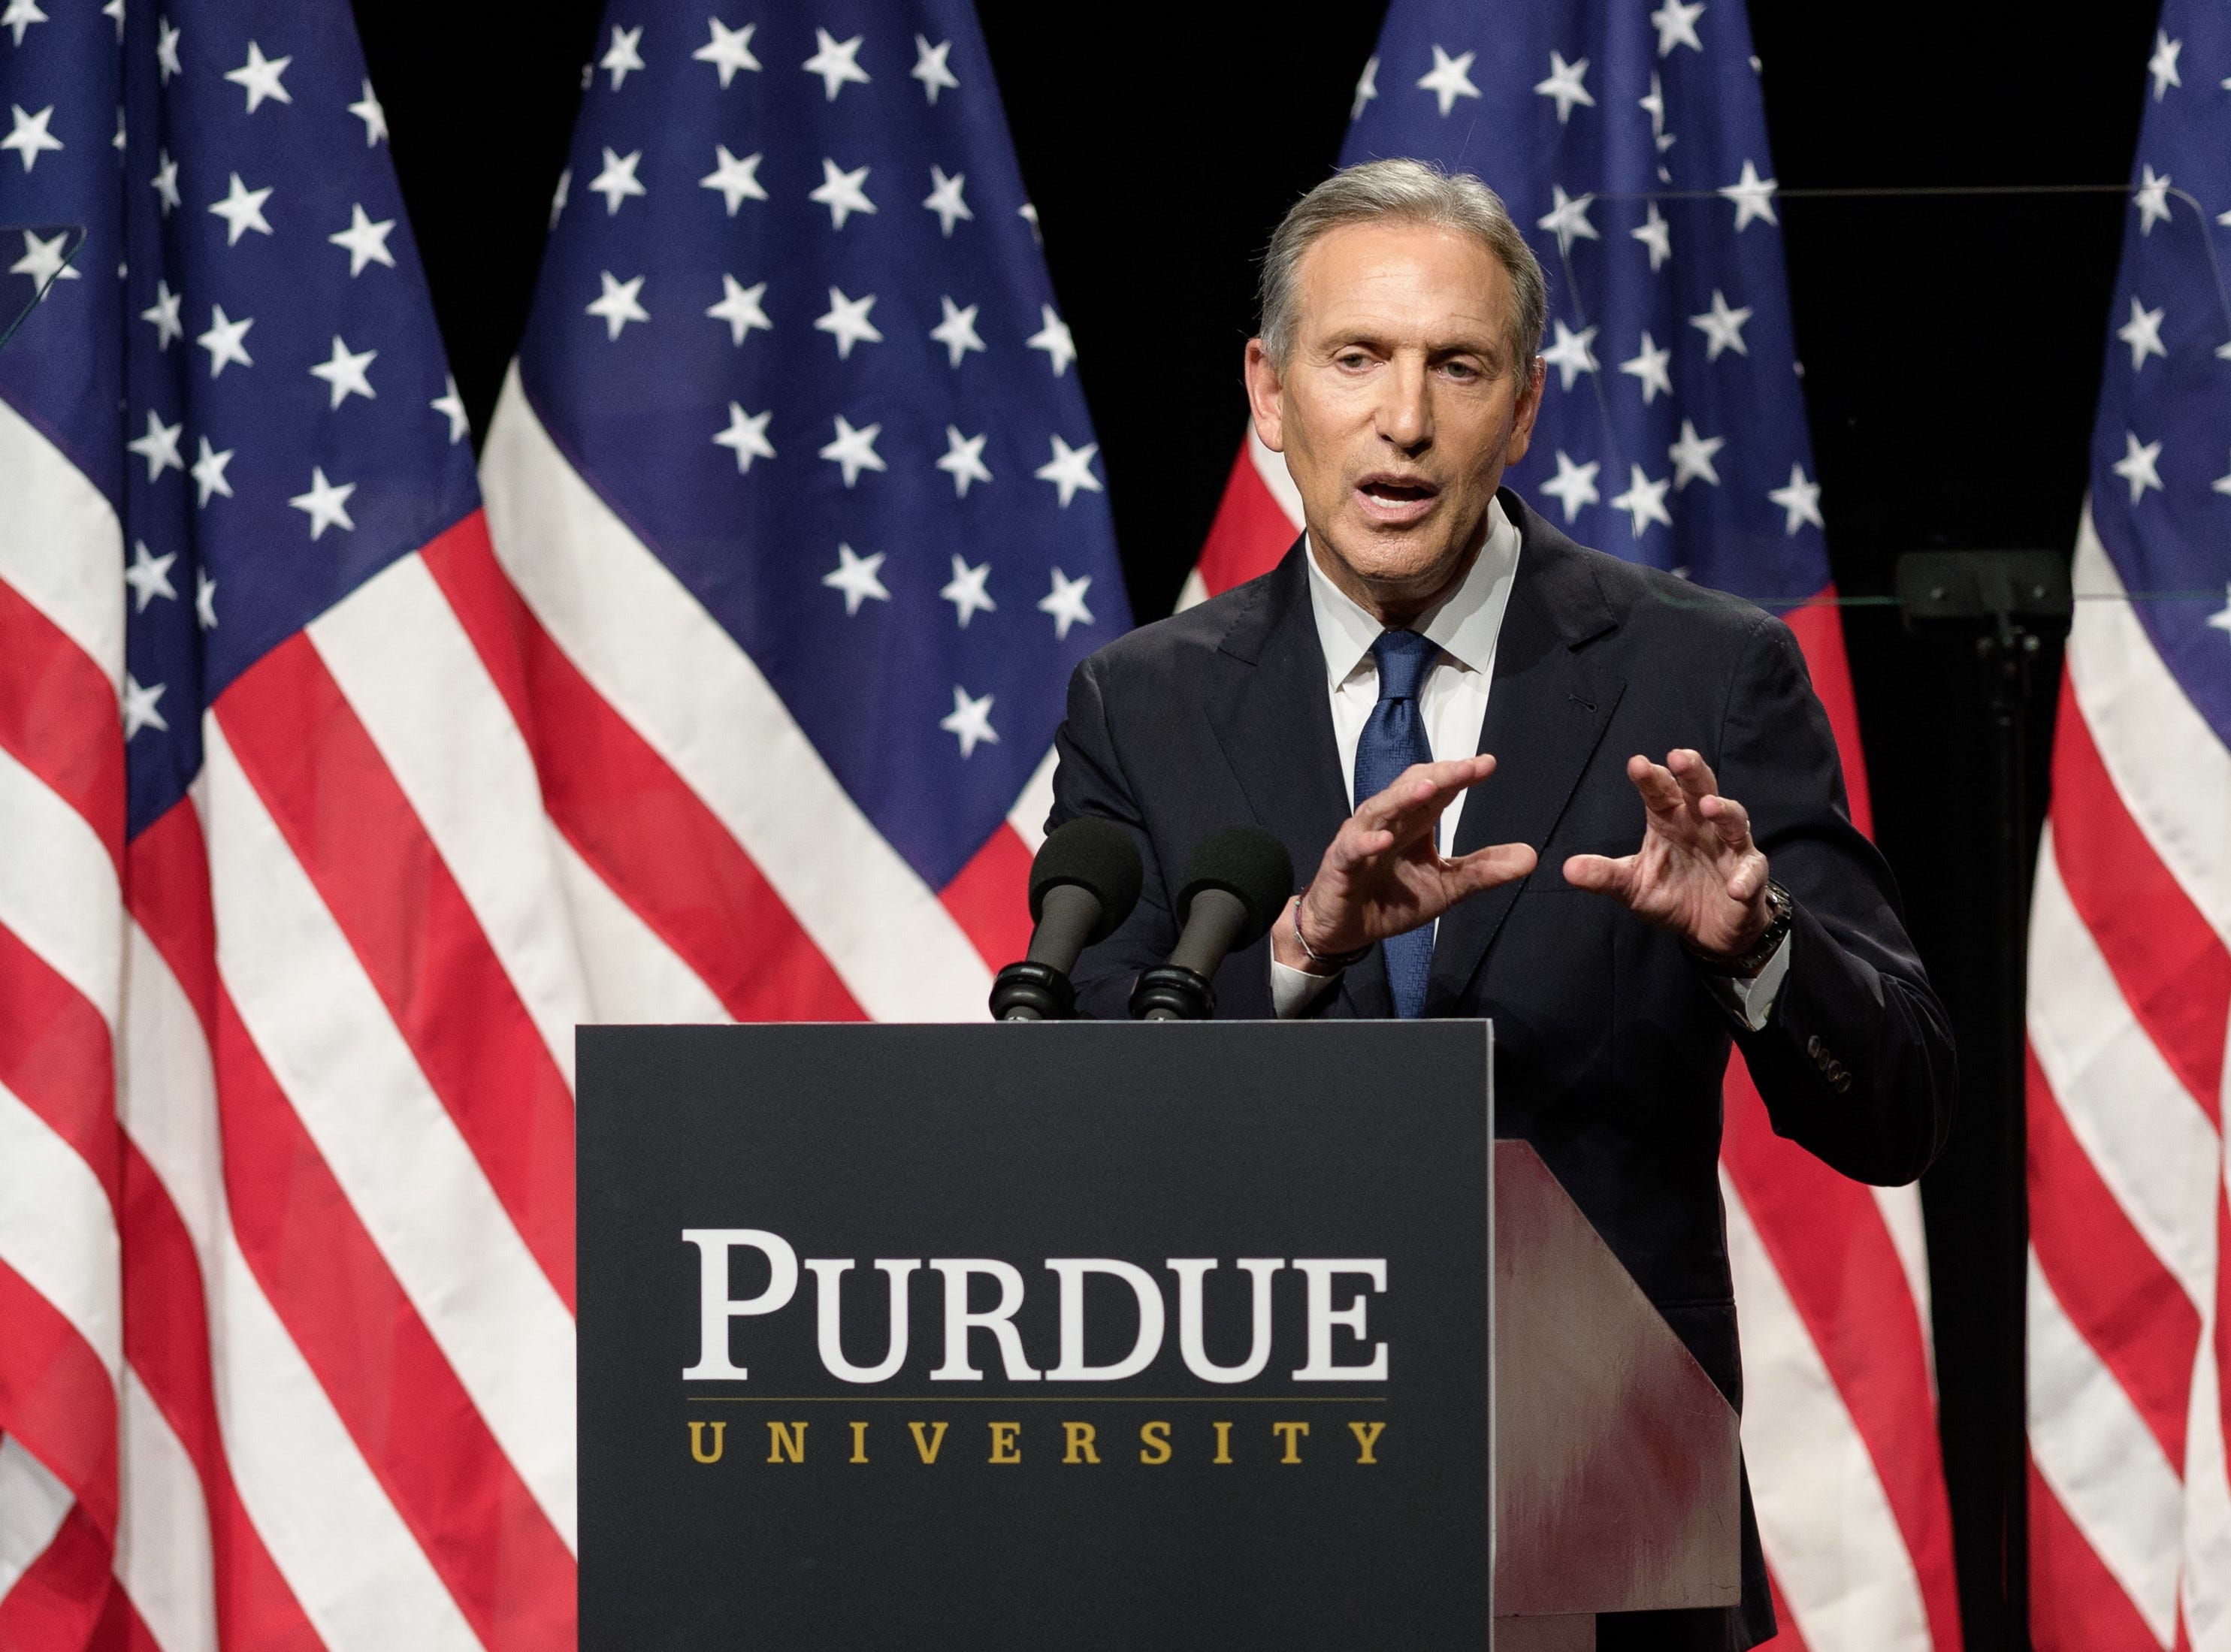 Howard Schultz spoke at Purdue on Thursday, Feb. 7, 2019.